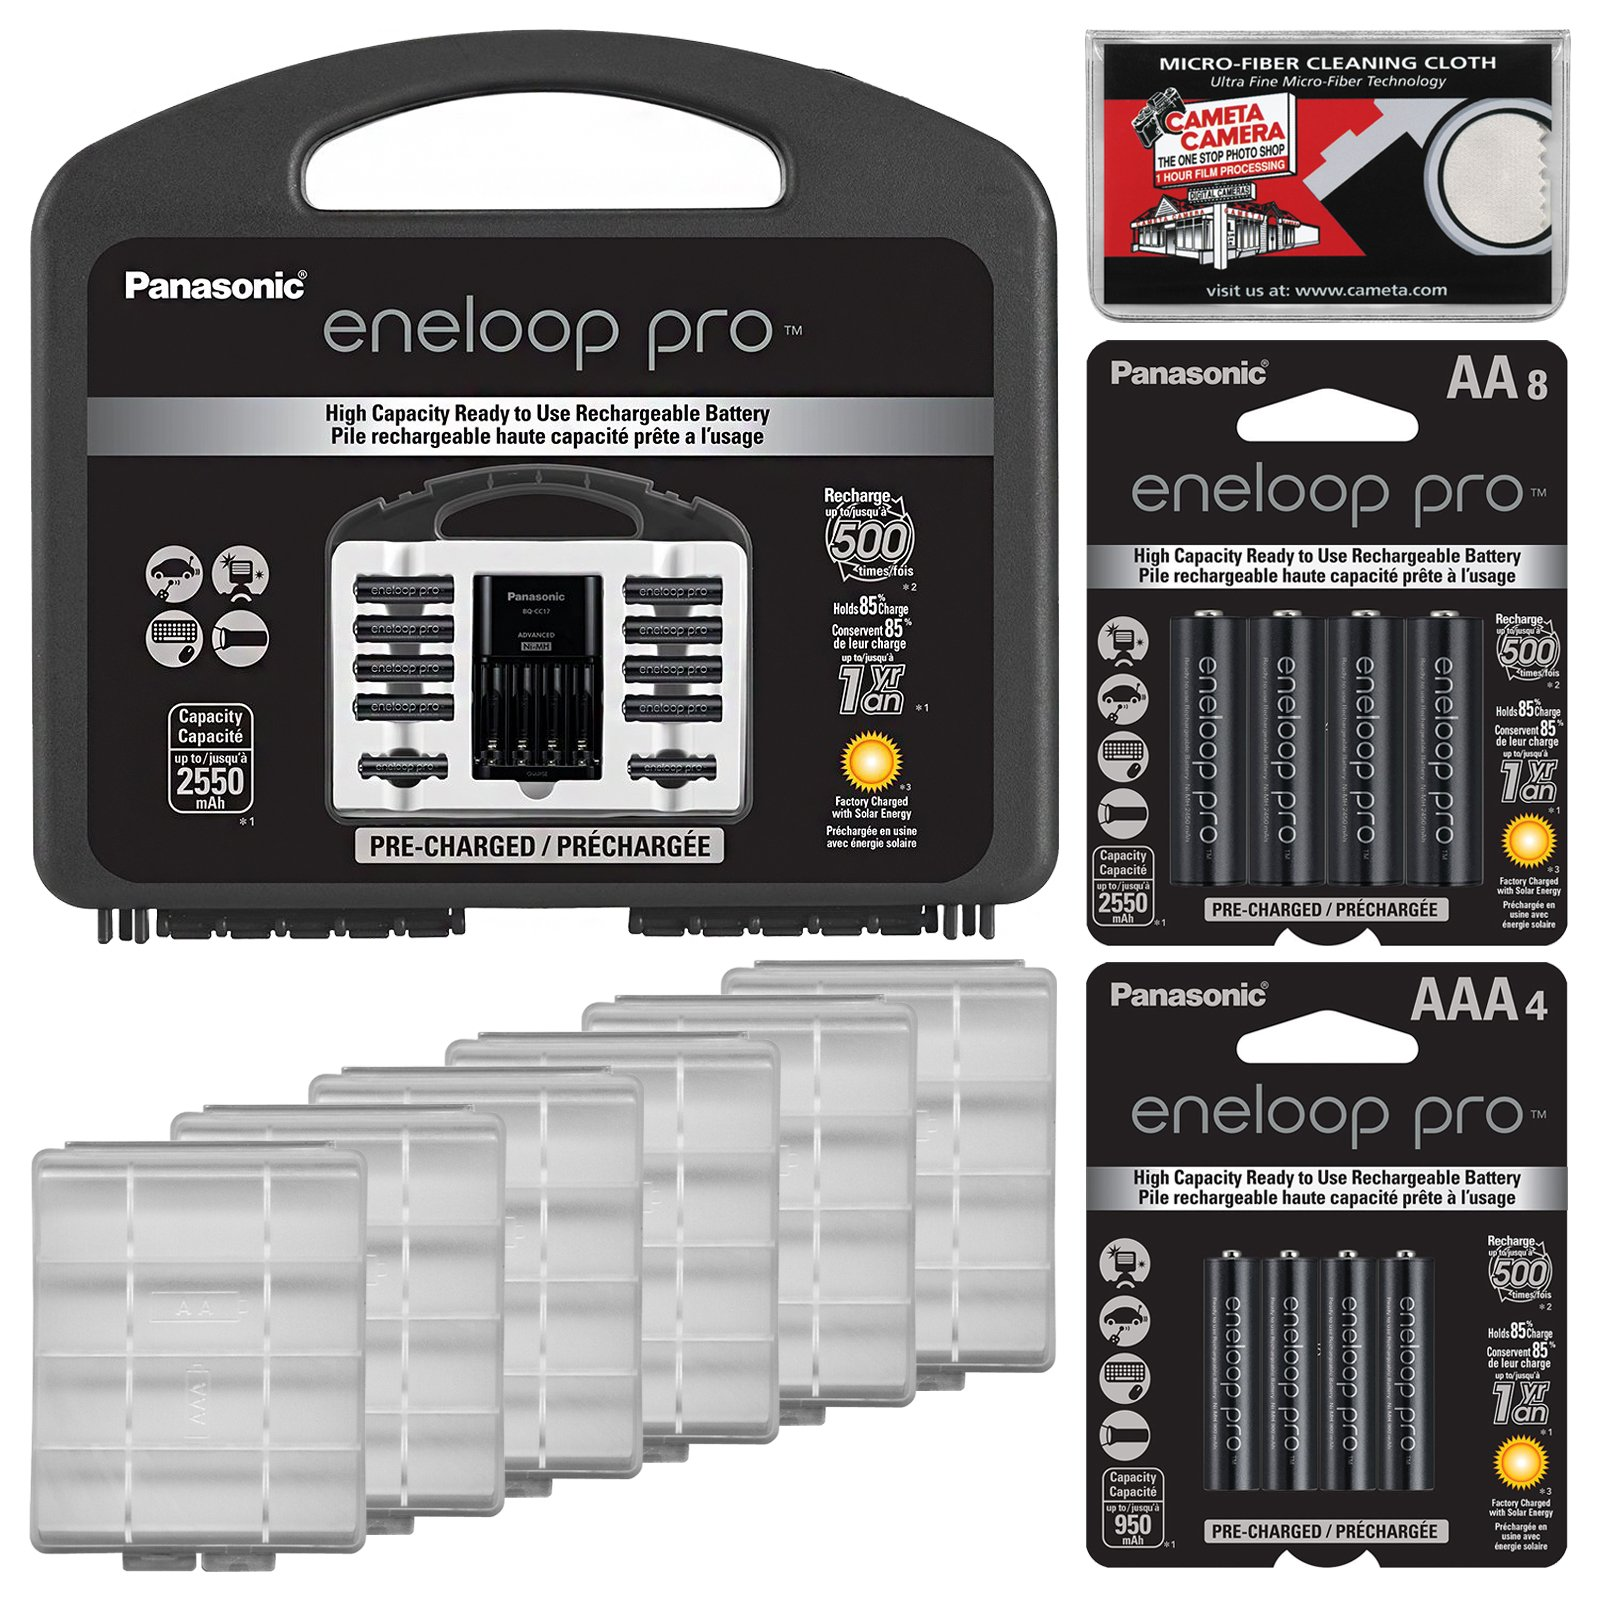 Panasonic eneloop Pro Charger with (8) AA and (2) AAA Batteries & Case Set + (8) Extra AA Batteries + (4) Extra AAA Batteries + (6) Battery Cases + Kit